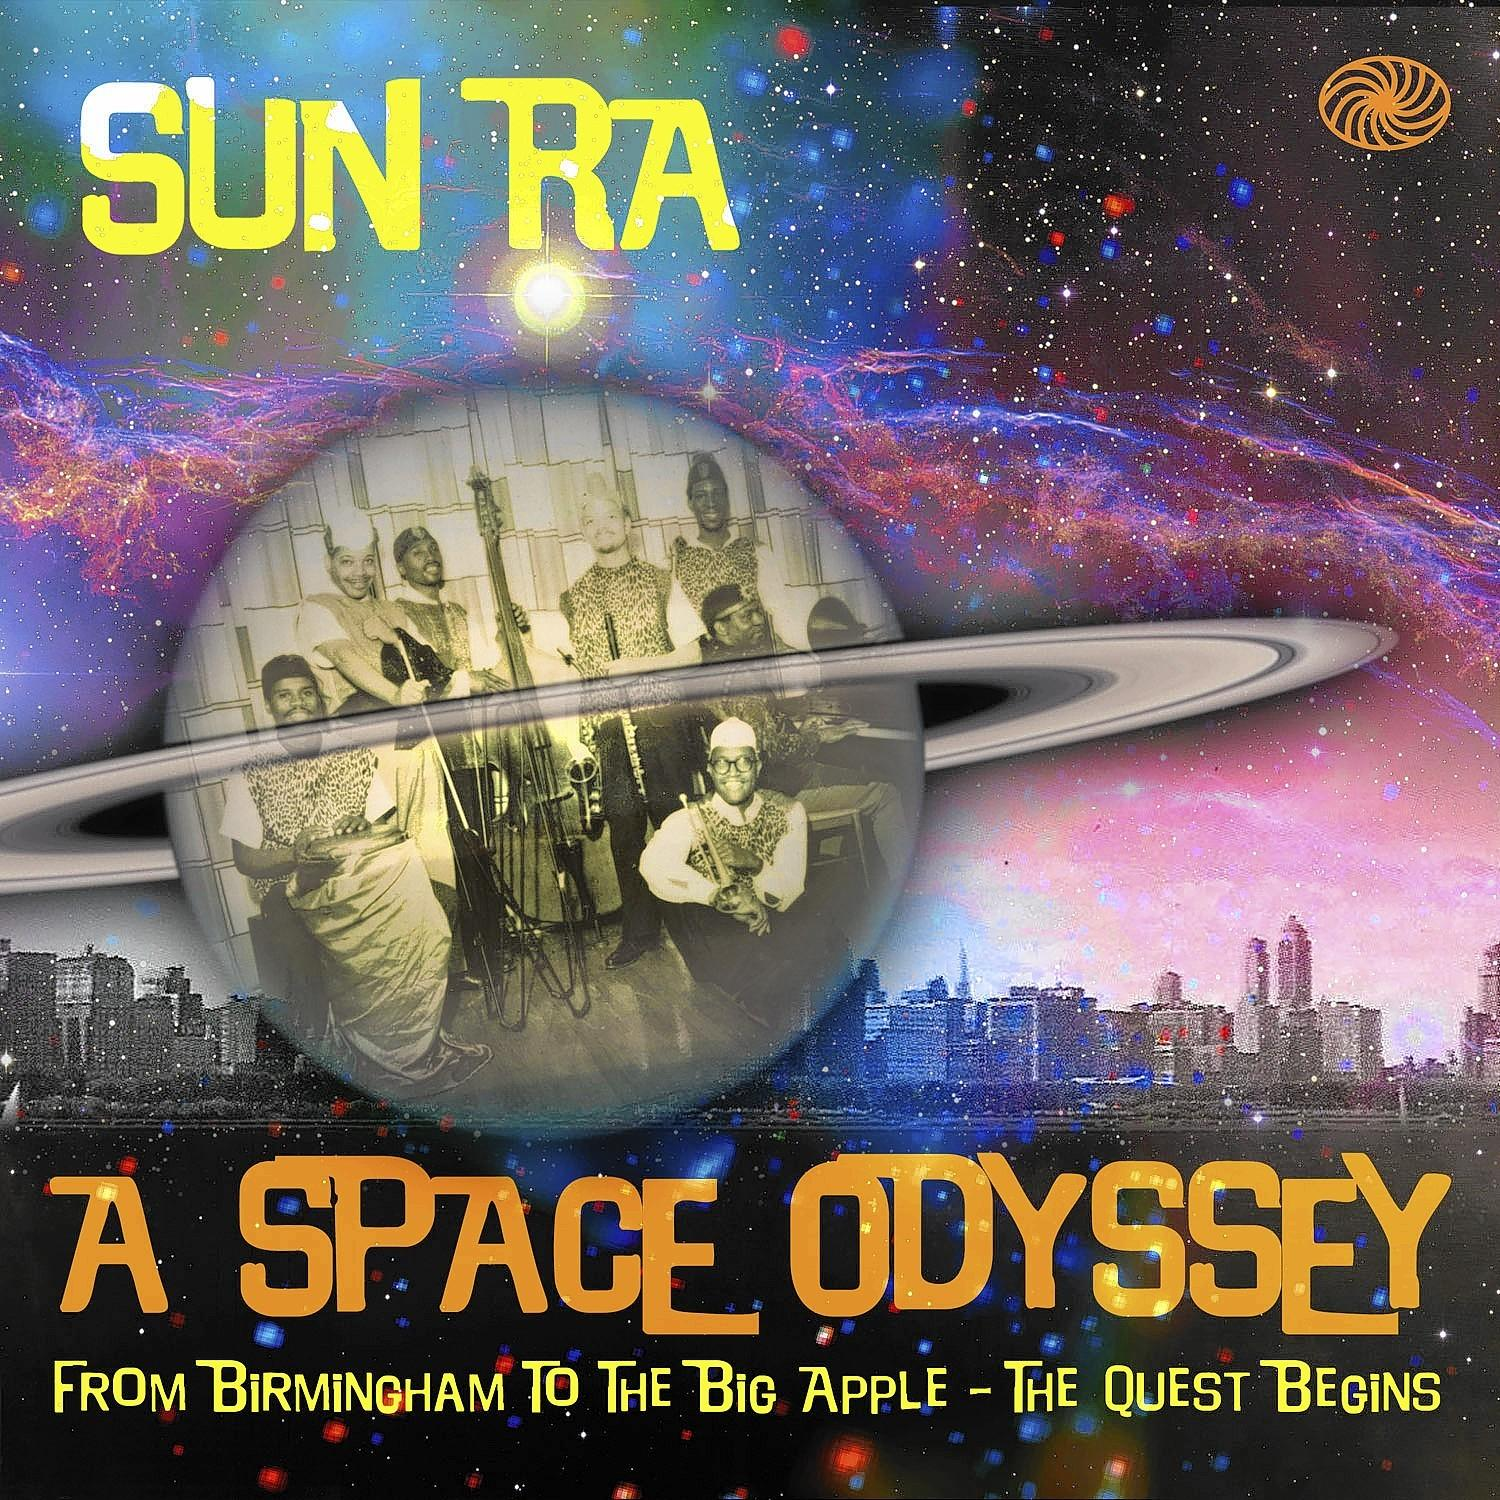 Owen McNally says that Sun Ra's performances in Hartford were some of the most notable jazz concerts in Connecticut's history.